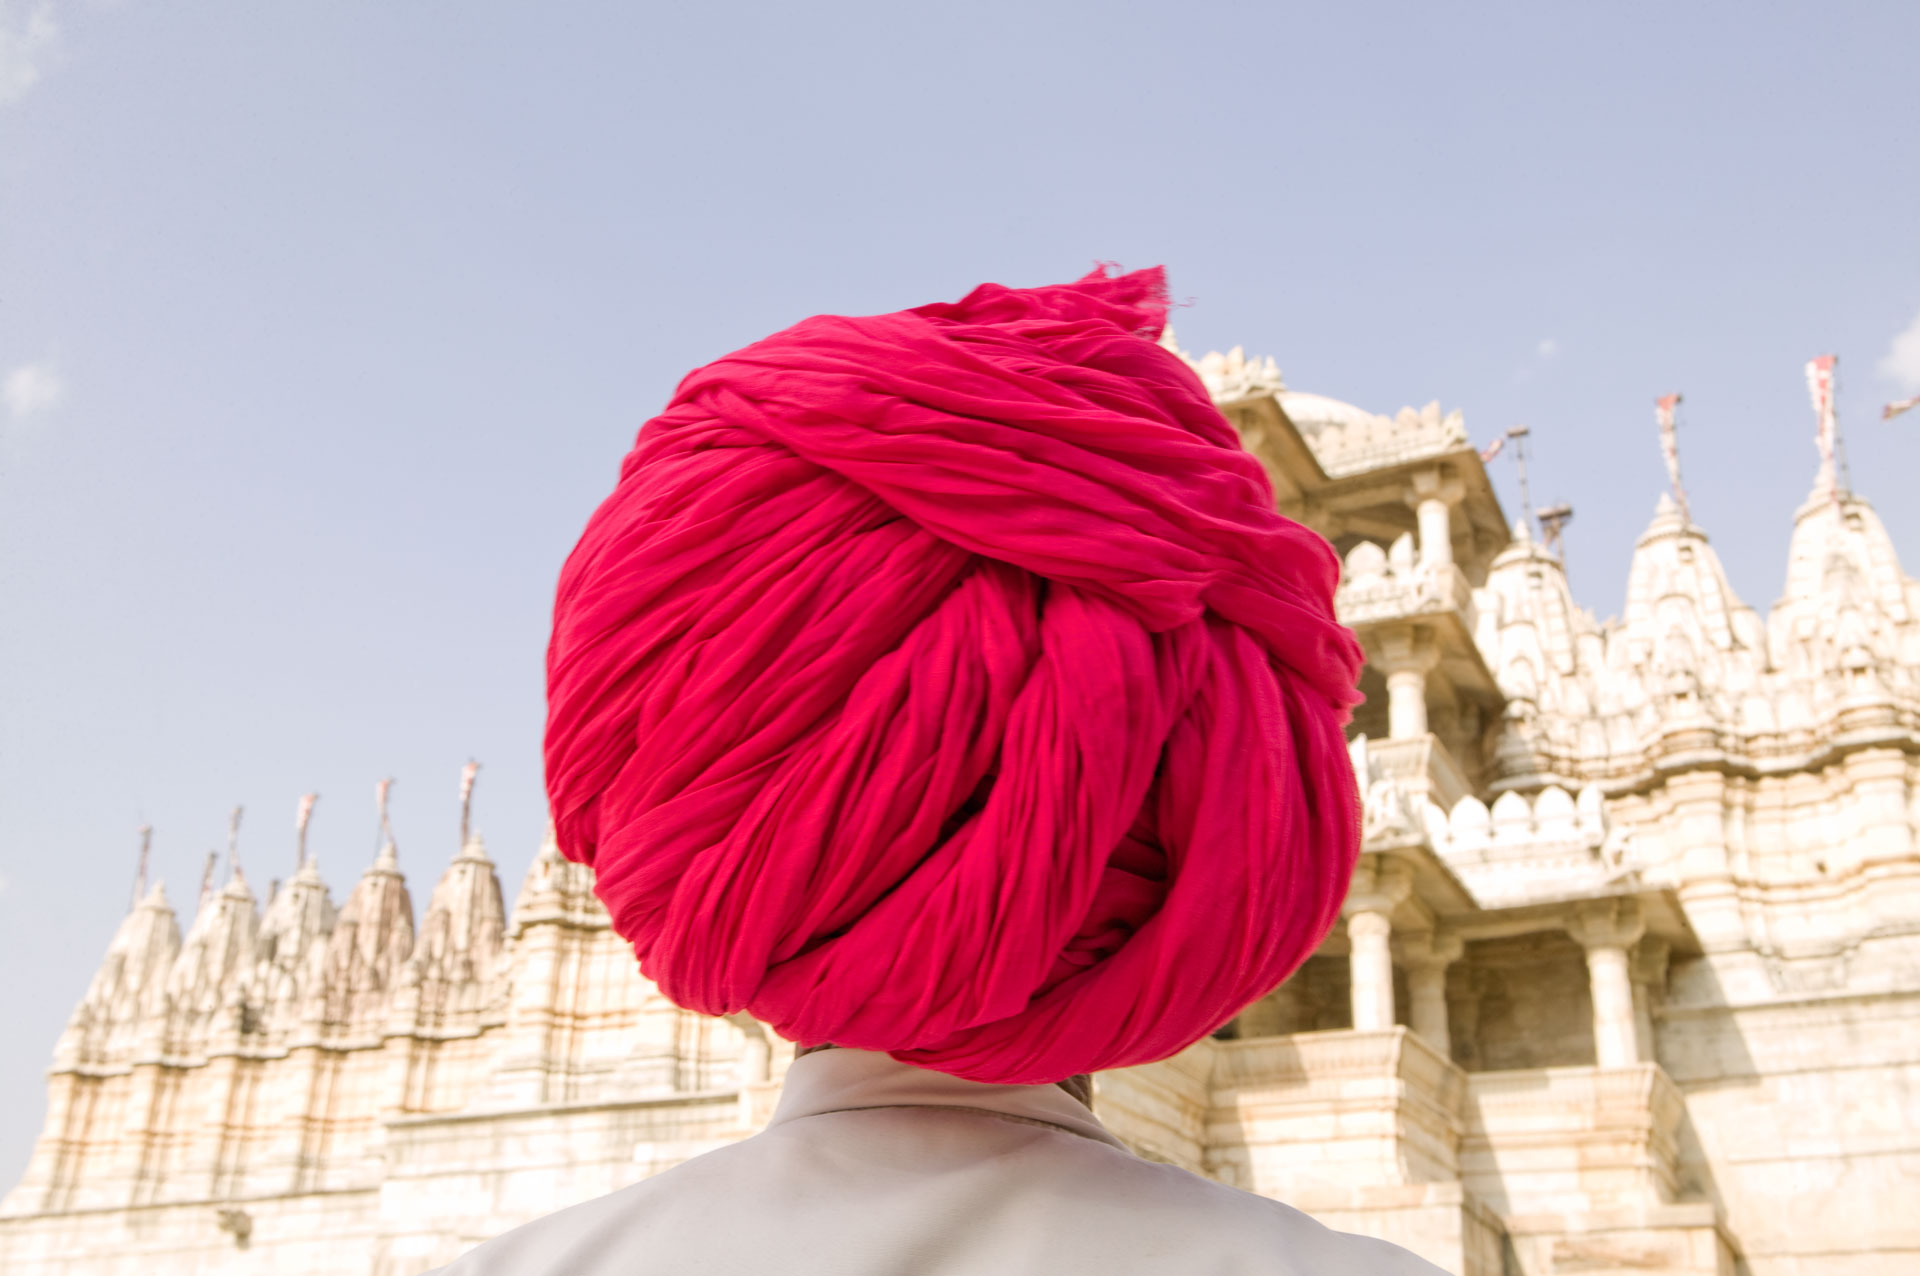 Jason Florio photography - color image a man in a vibrant pink/fuchsia tuban, with his back to the camera, looking at a temple, India